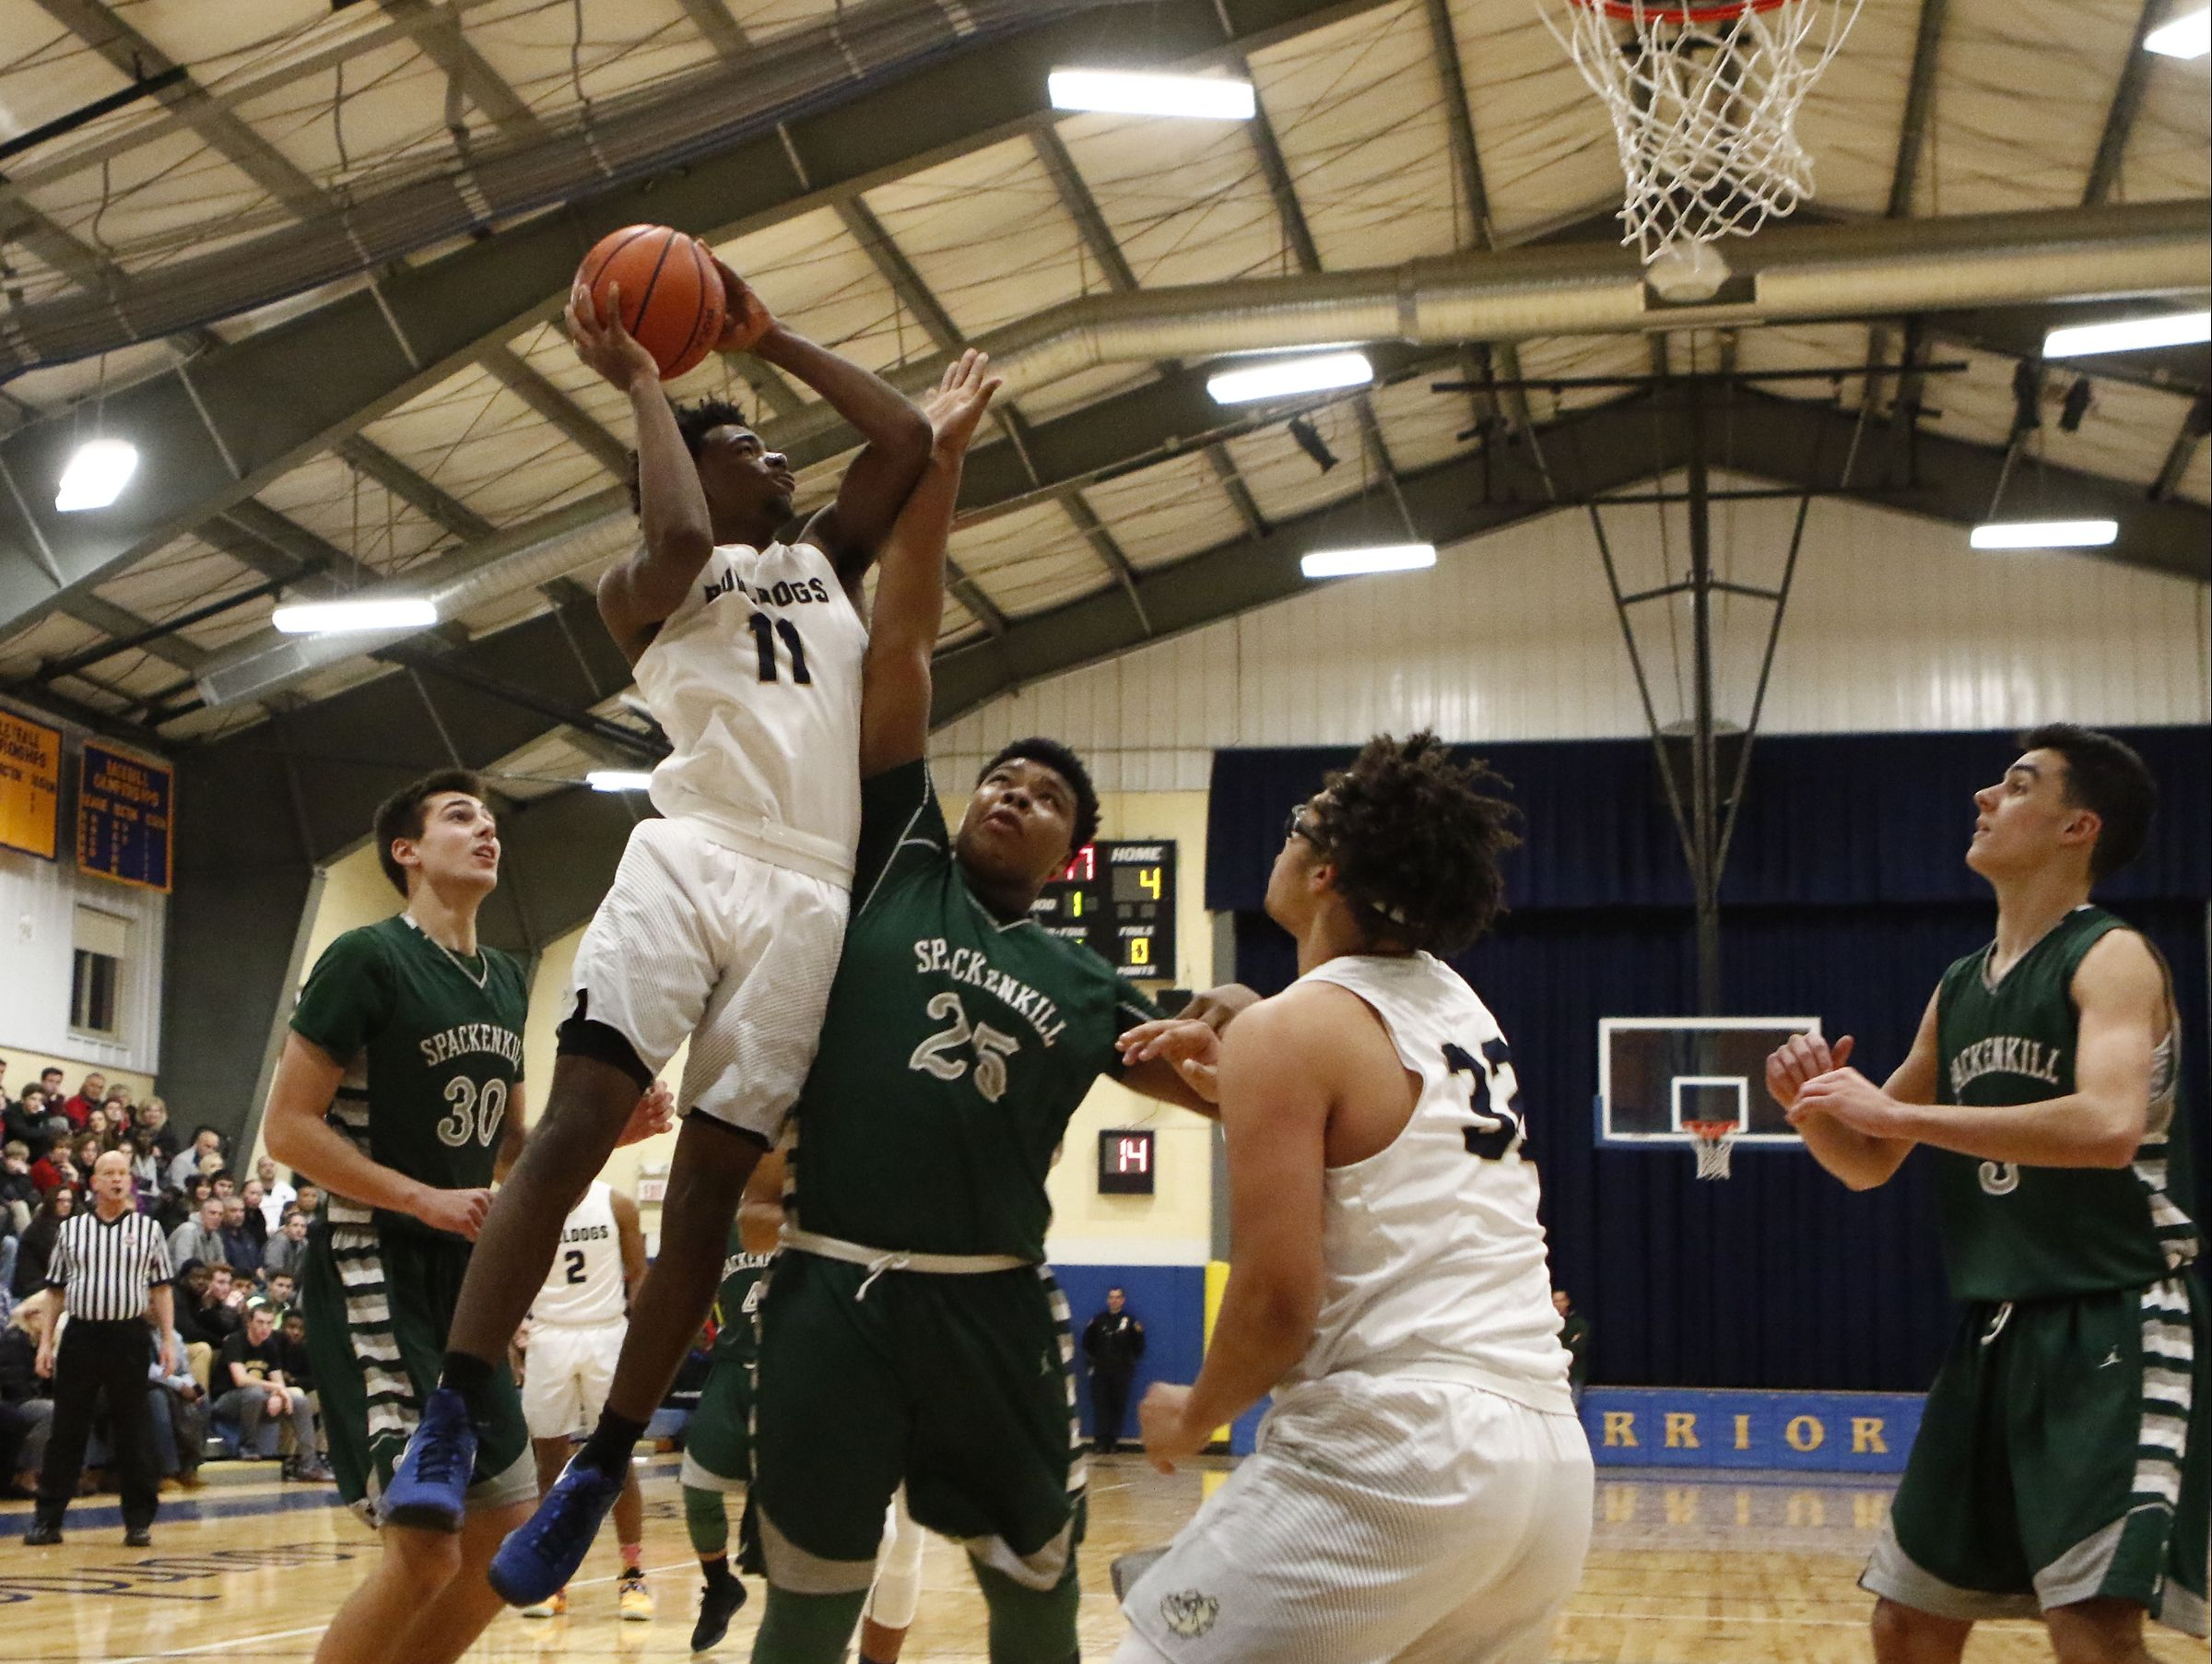 Beacon's Zamere McKenzie goes up for a shot against Spackenkill in the final of the Duane Davis Memorial Tournament on December 31, 2016.